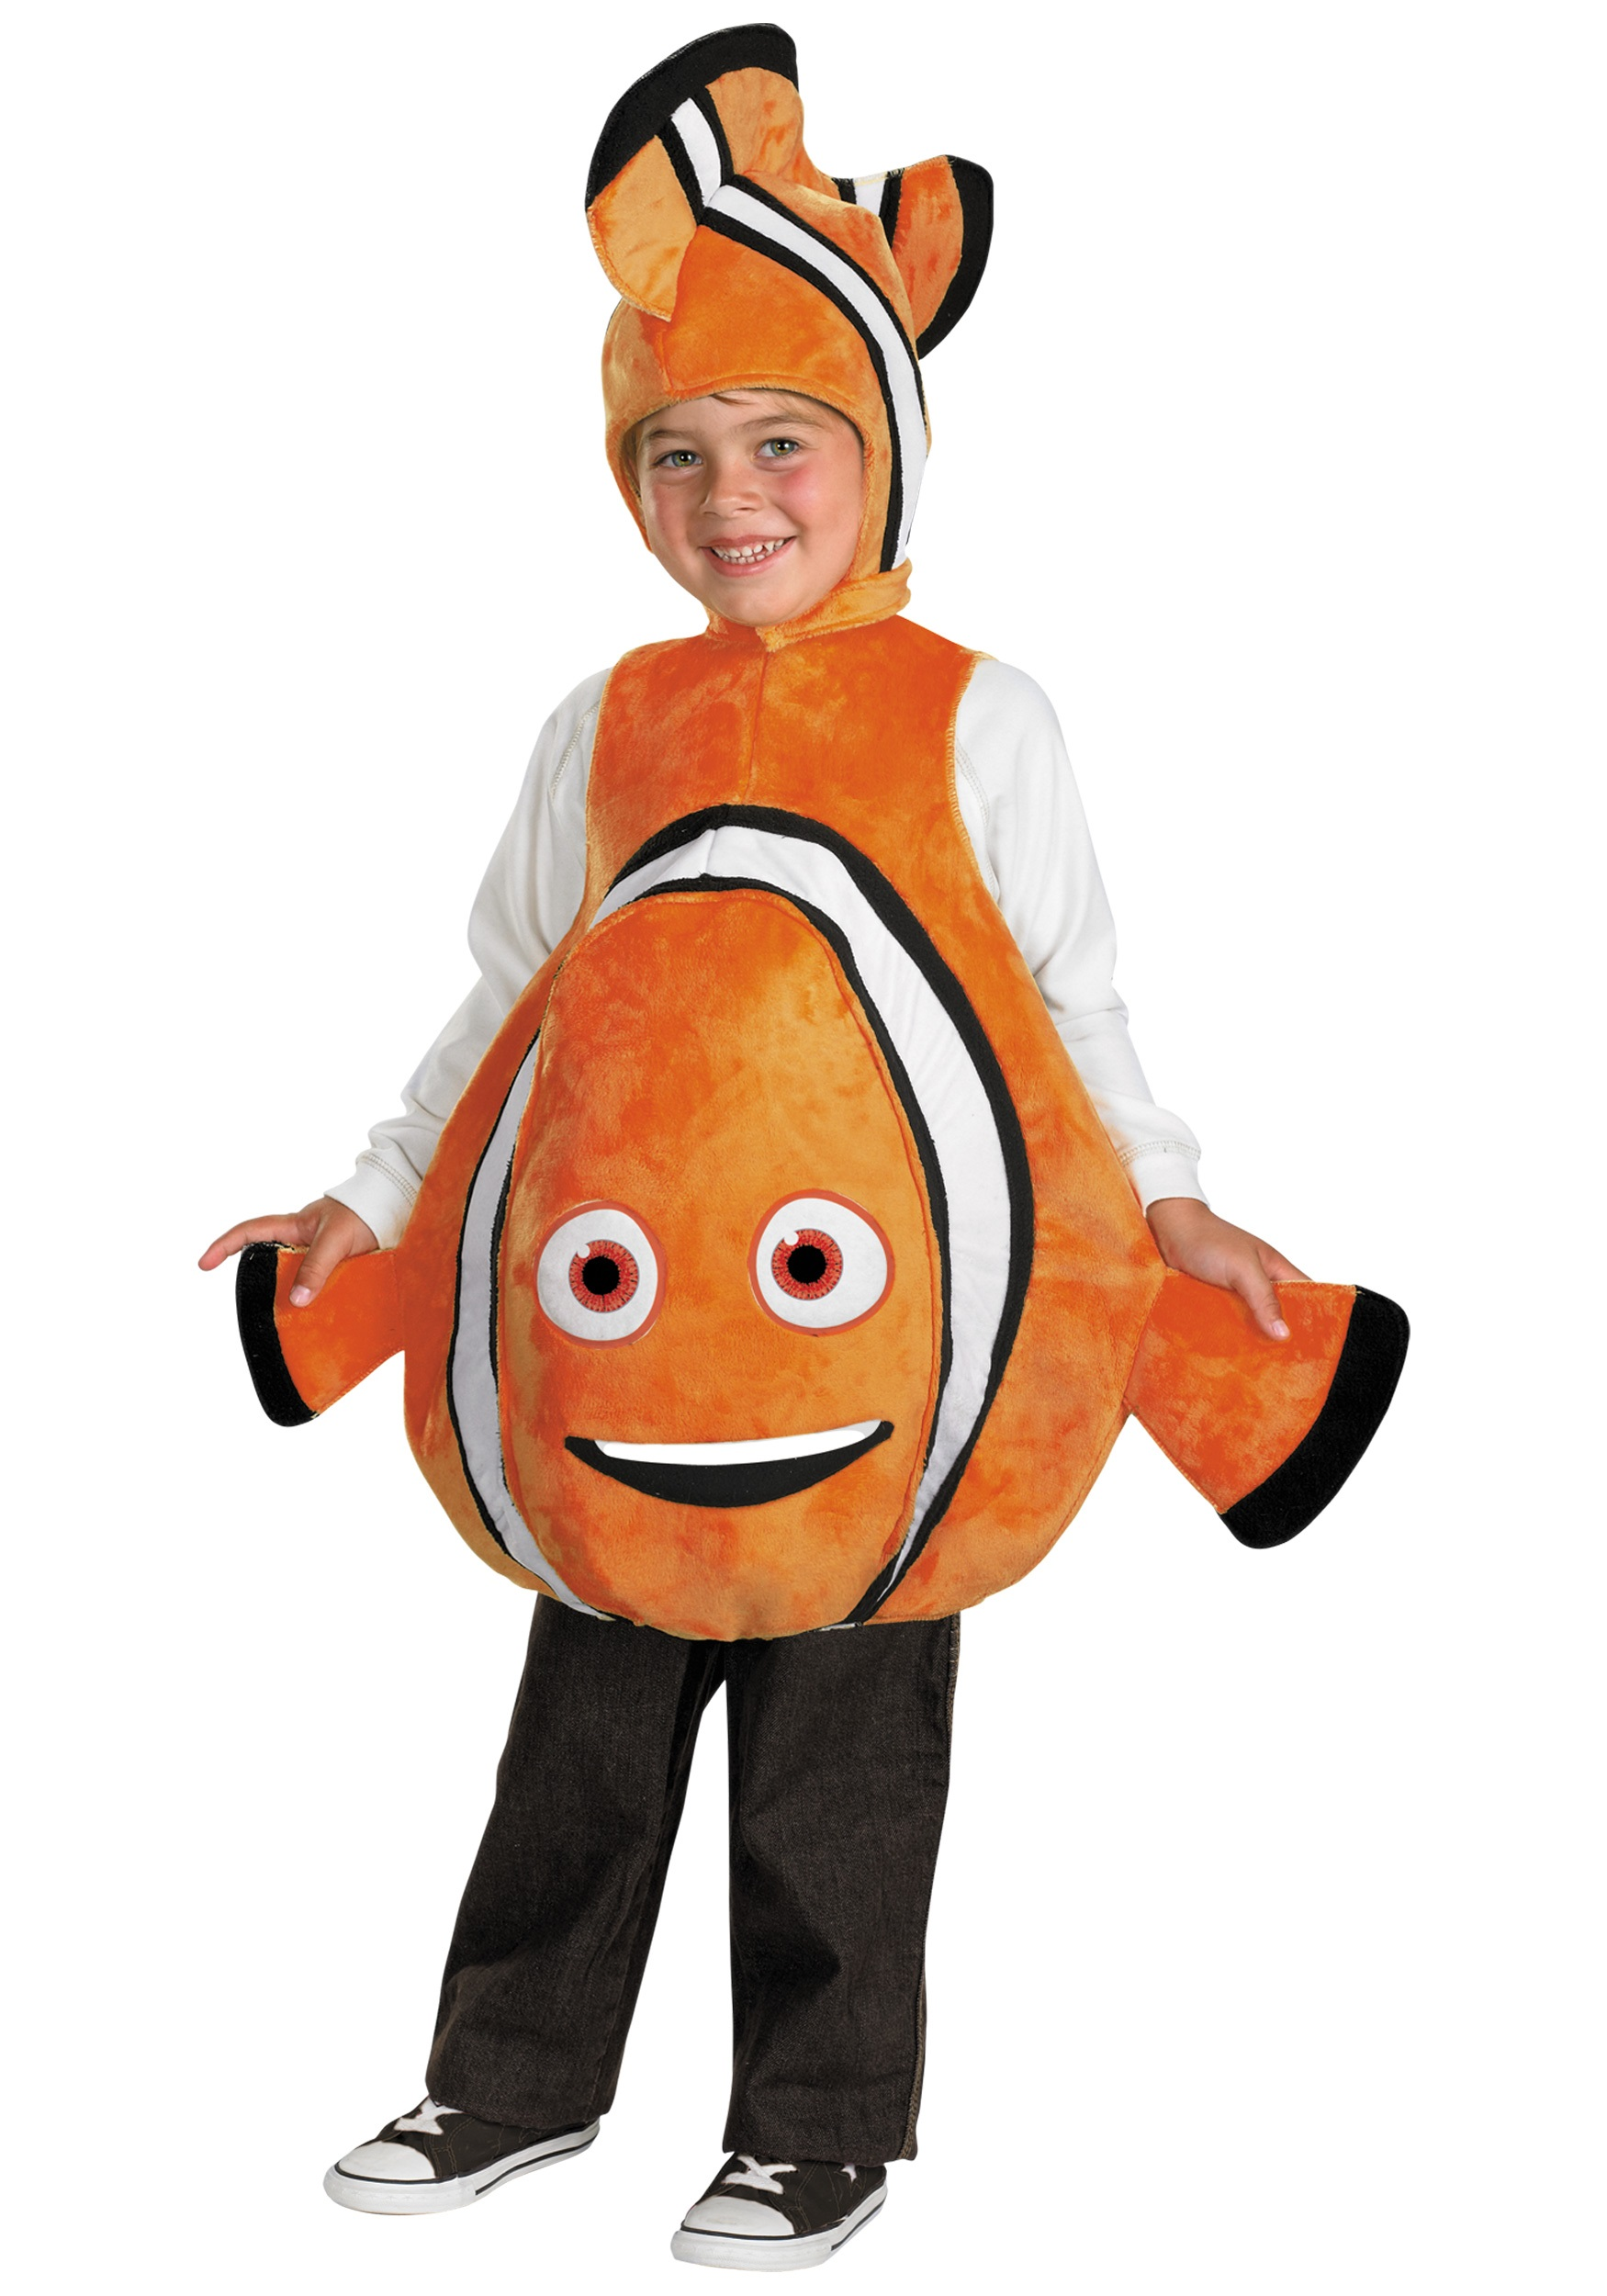 Toddler Deluxe Finding Nemo Costume  sc 1 st  Halloween Costumes & Toddler Deluxe Finding Nemo Costume - Nemo Costume for Toddlers